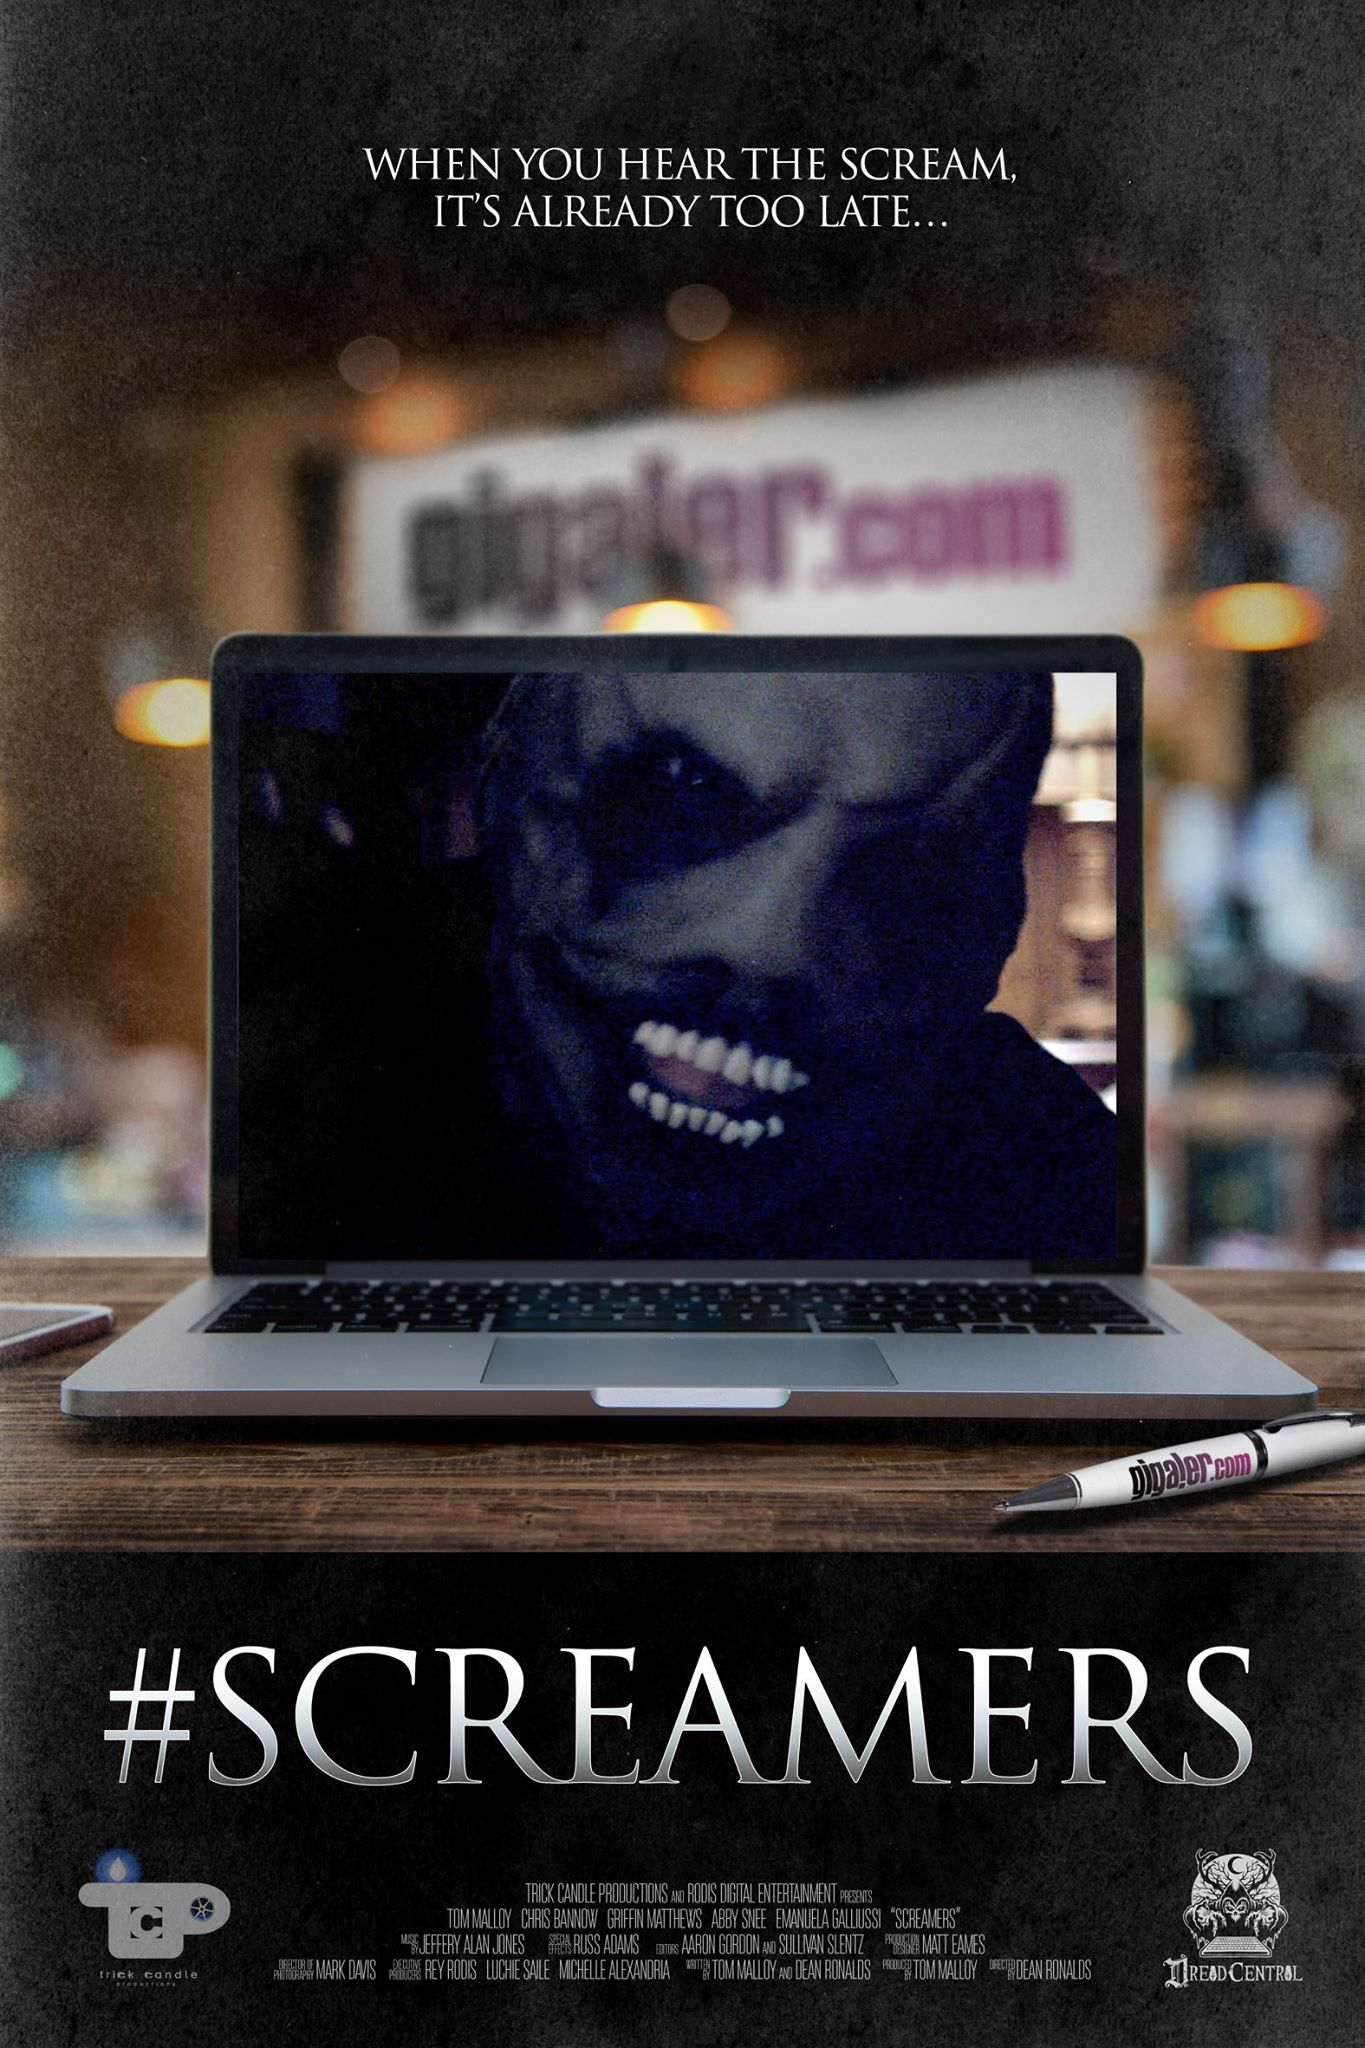 screamers 2 - Dread Central Presents #Screamers NEXT WEEK! Get Your Tickets NOW!!!